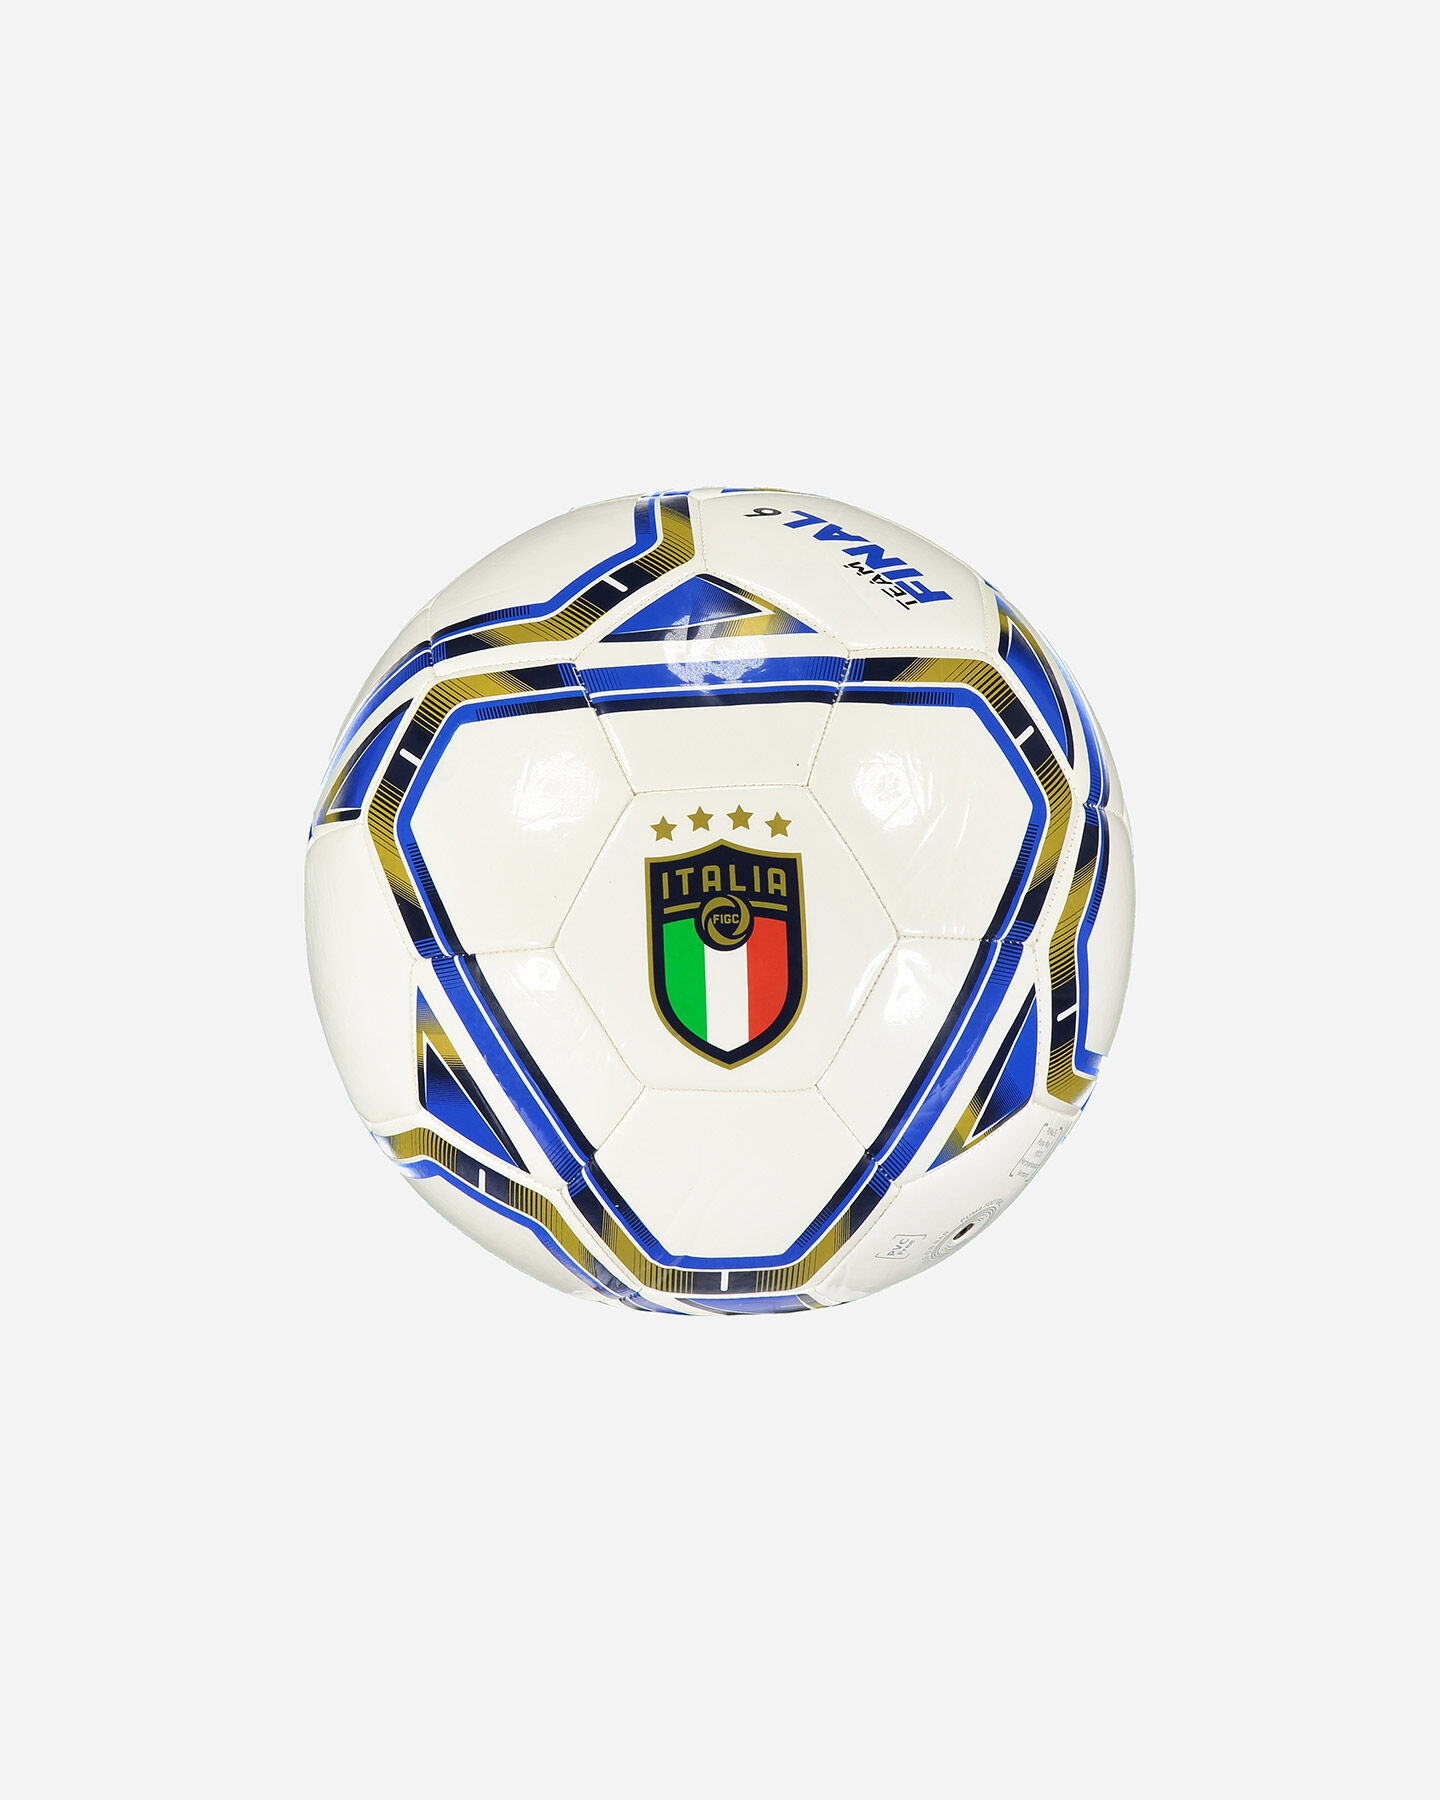 Pallone calcio PUMA ITALIA TRAINING 6 S5172866|01|5 scatto 1